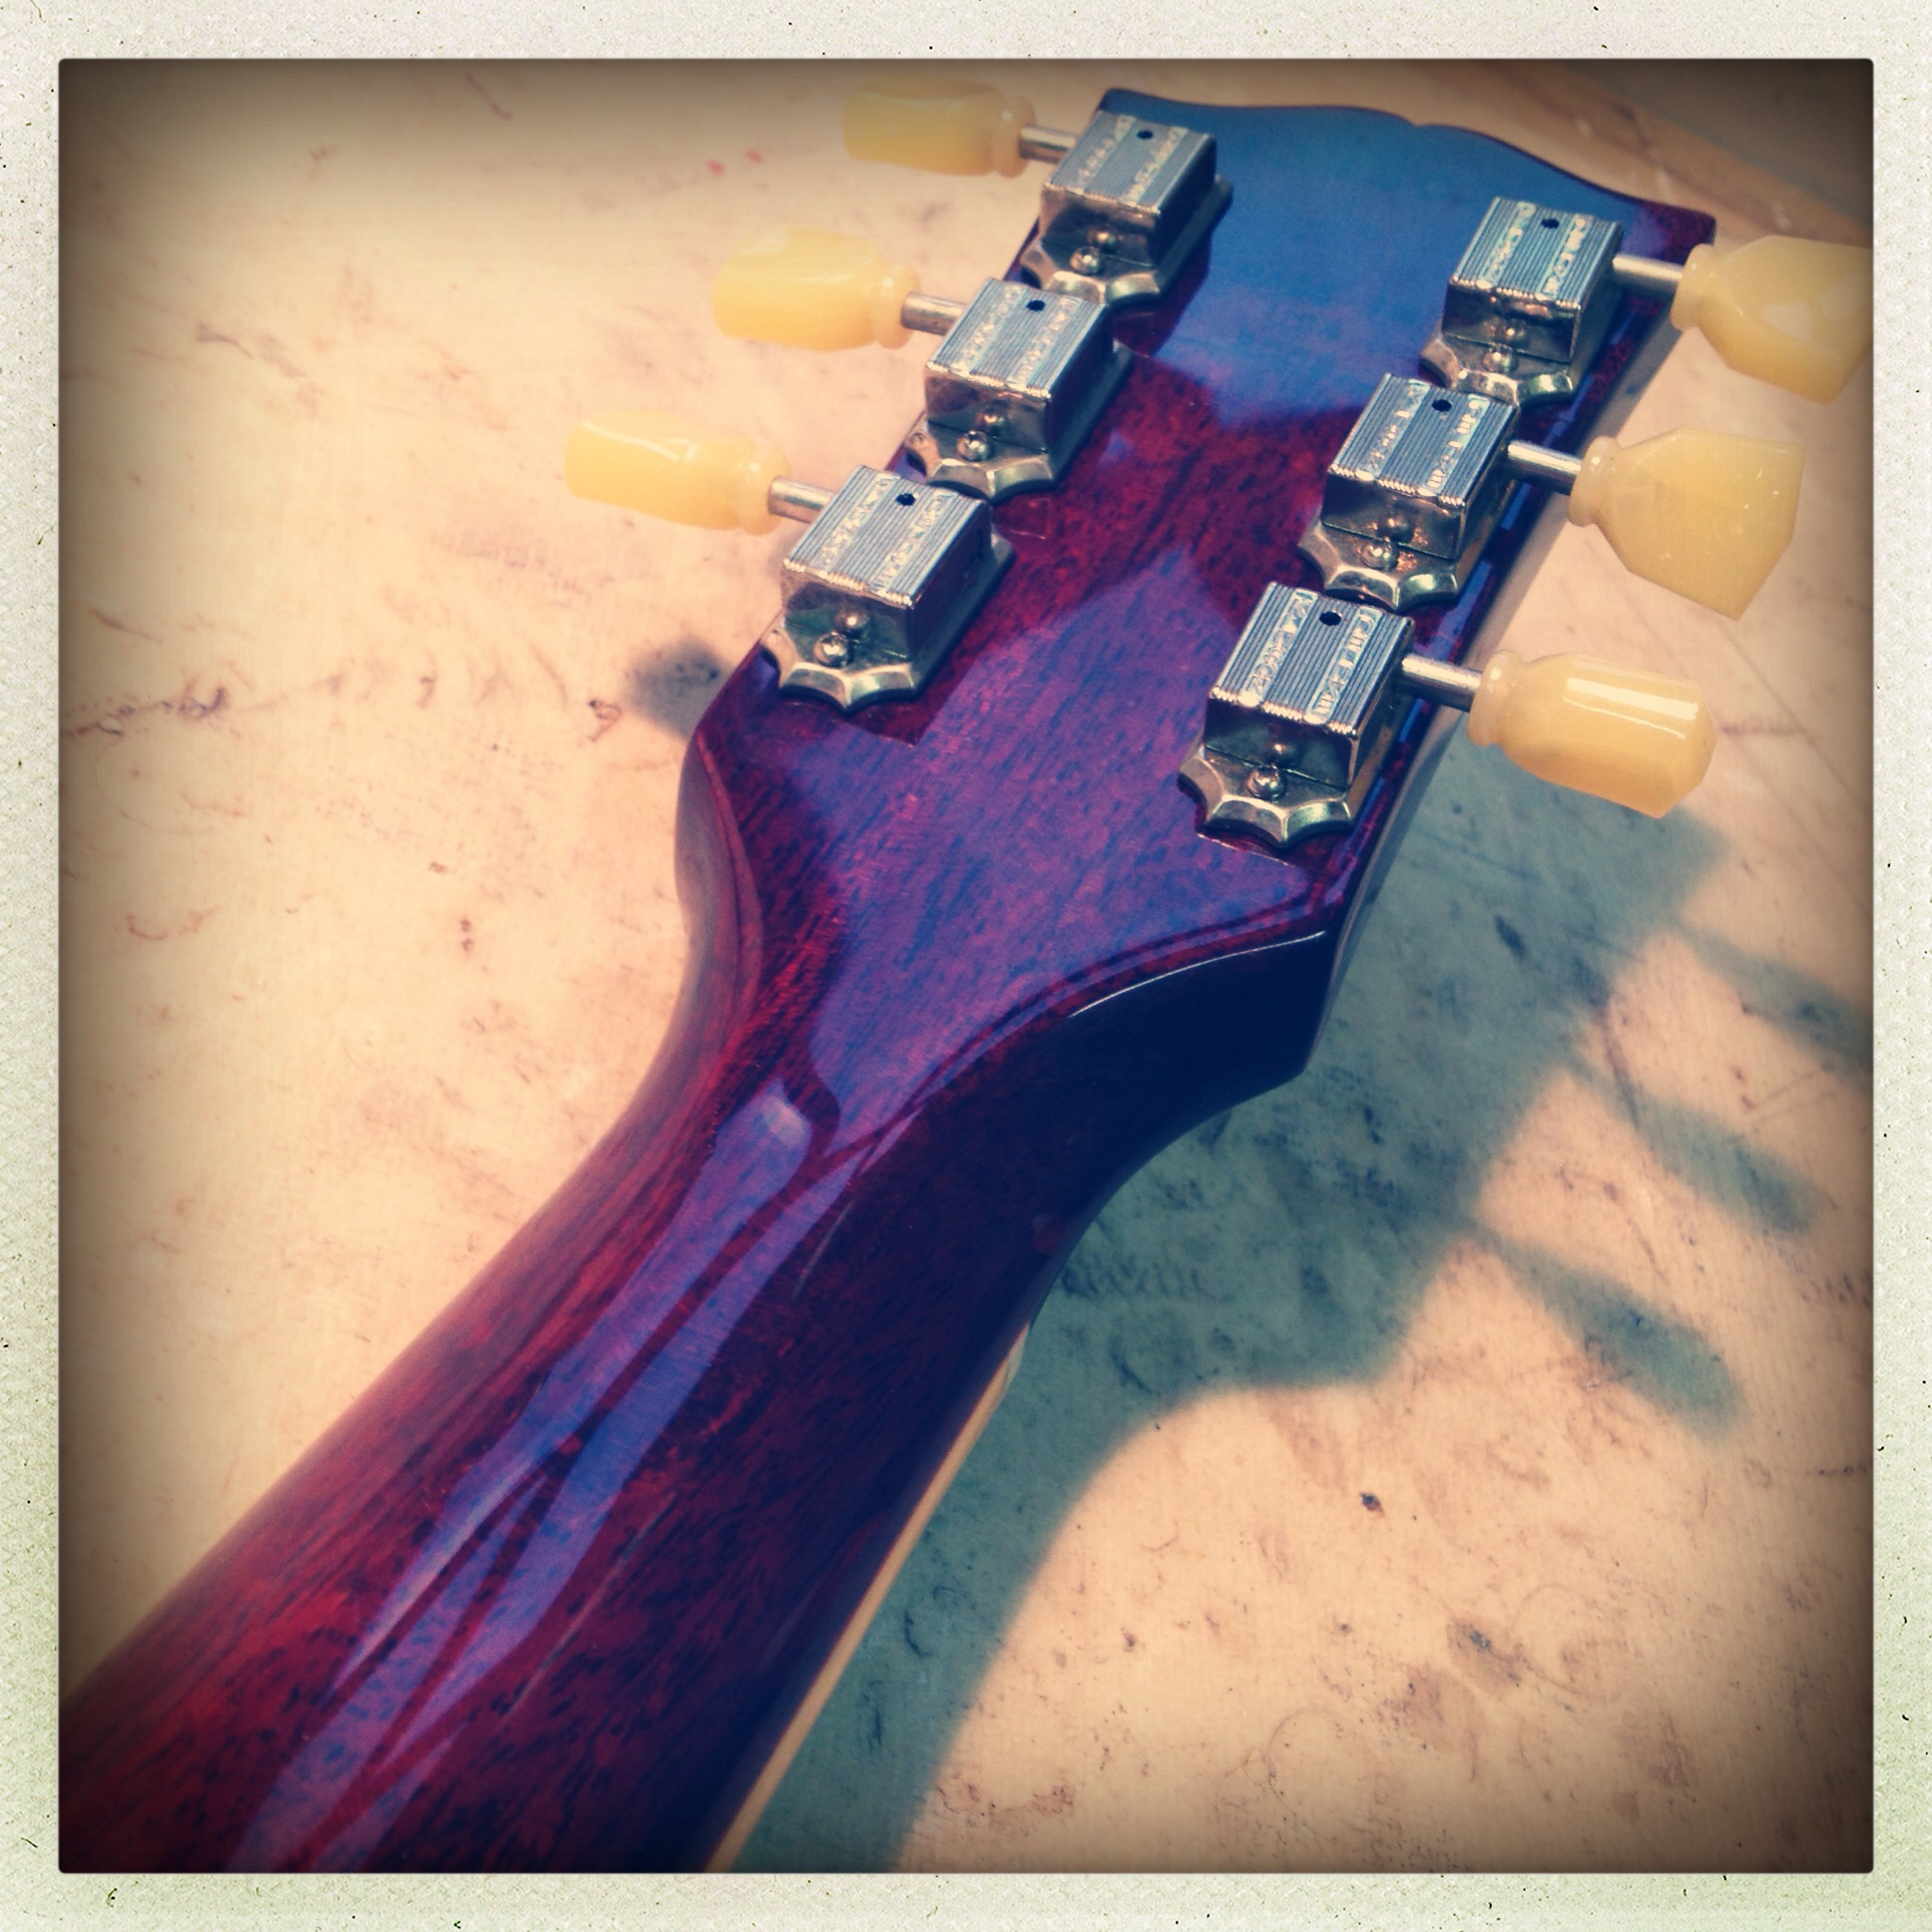 Gibson headstock break repaired with backstrap overlay